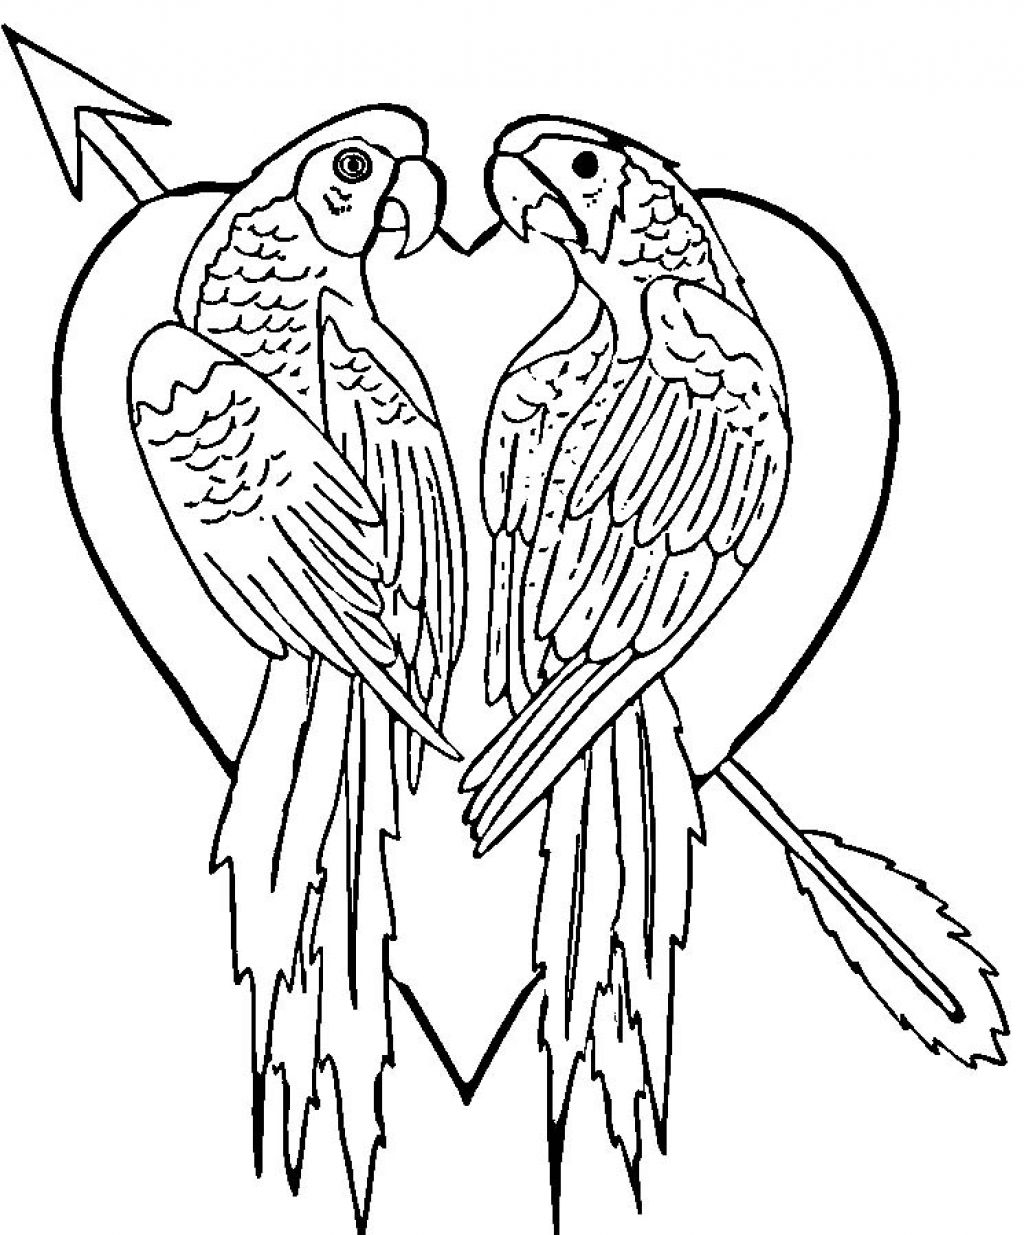 1024x1235 Parrot Coloring Pages Free For Kids With Parrot Coloring Pages